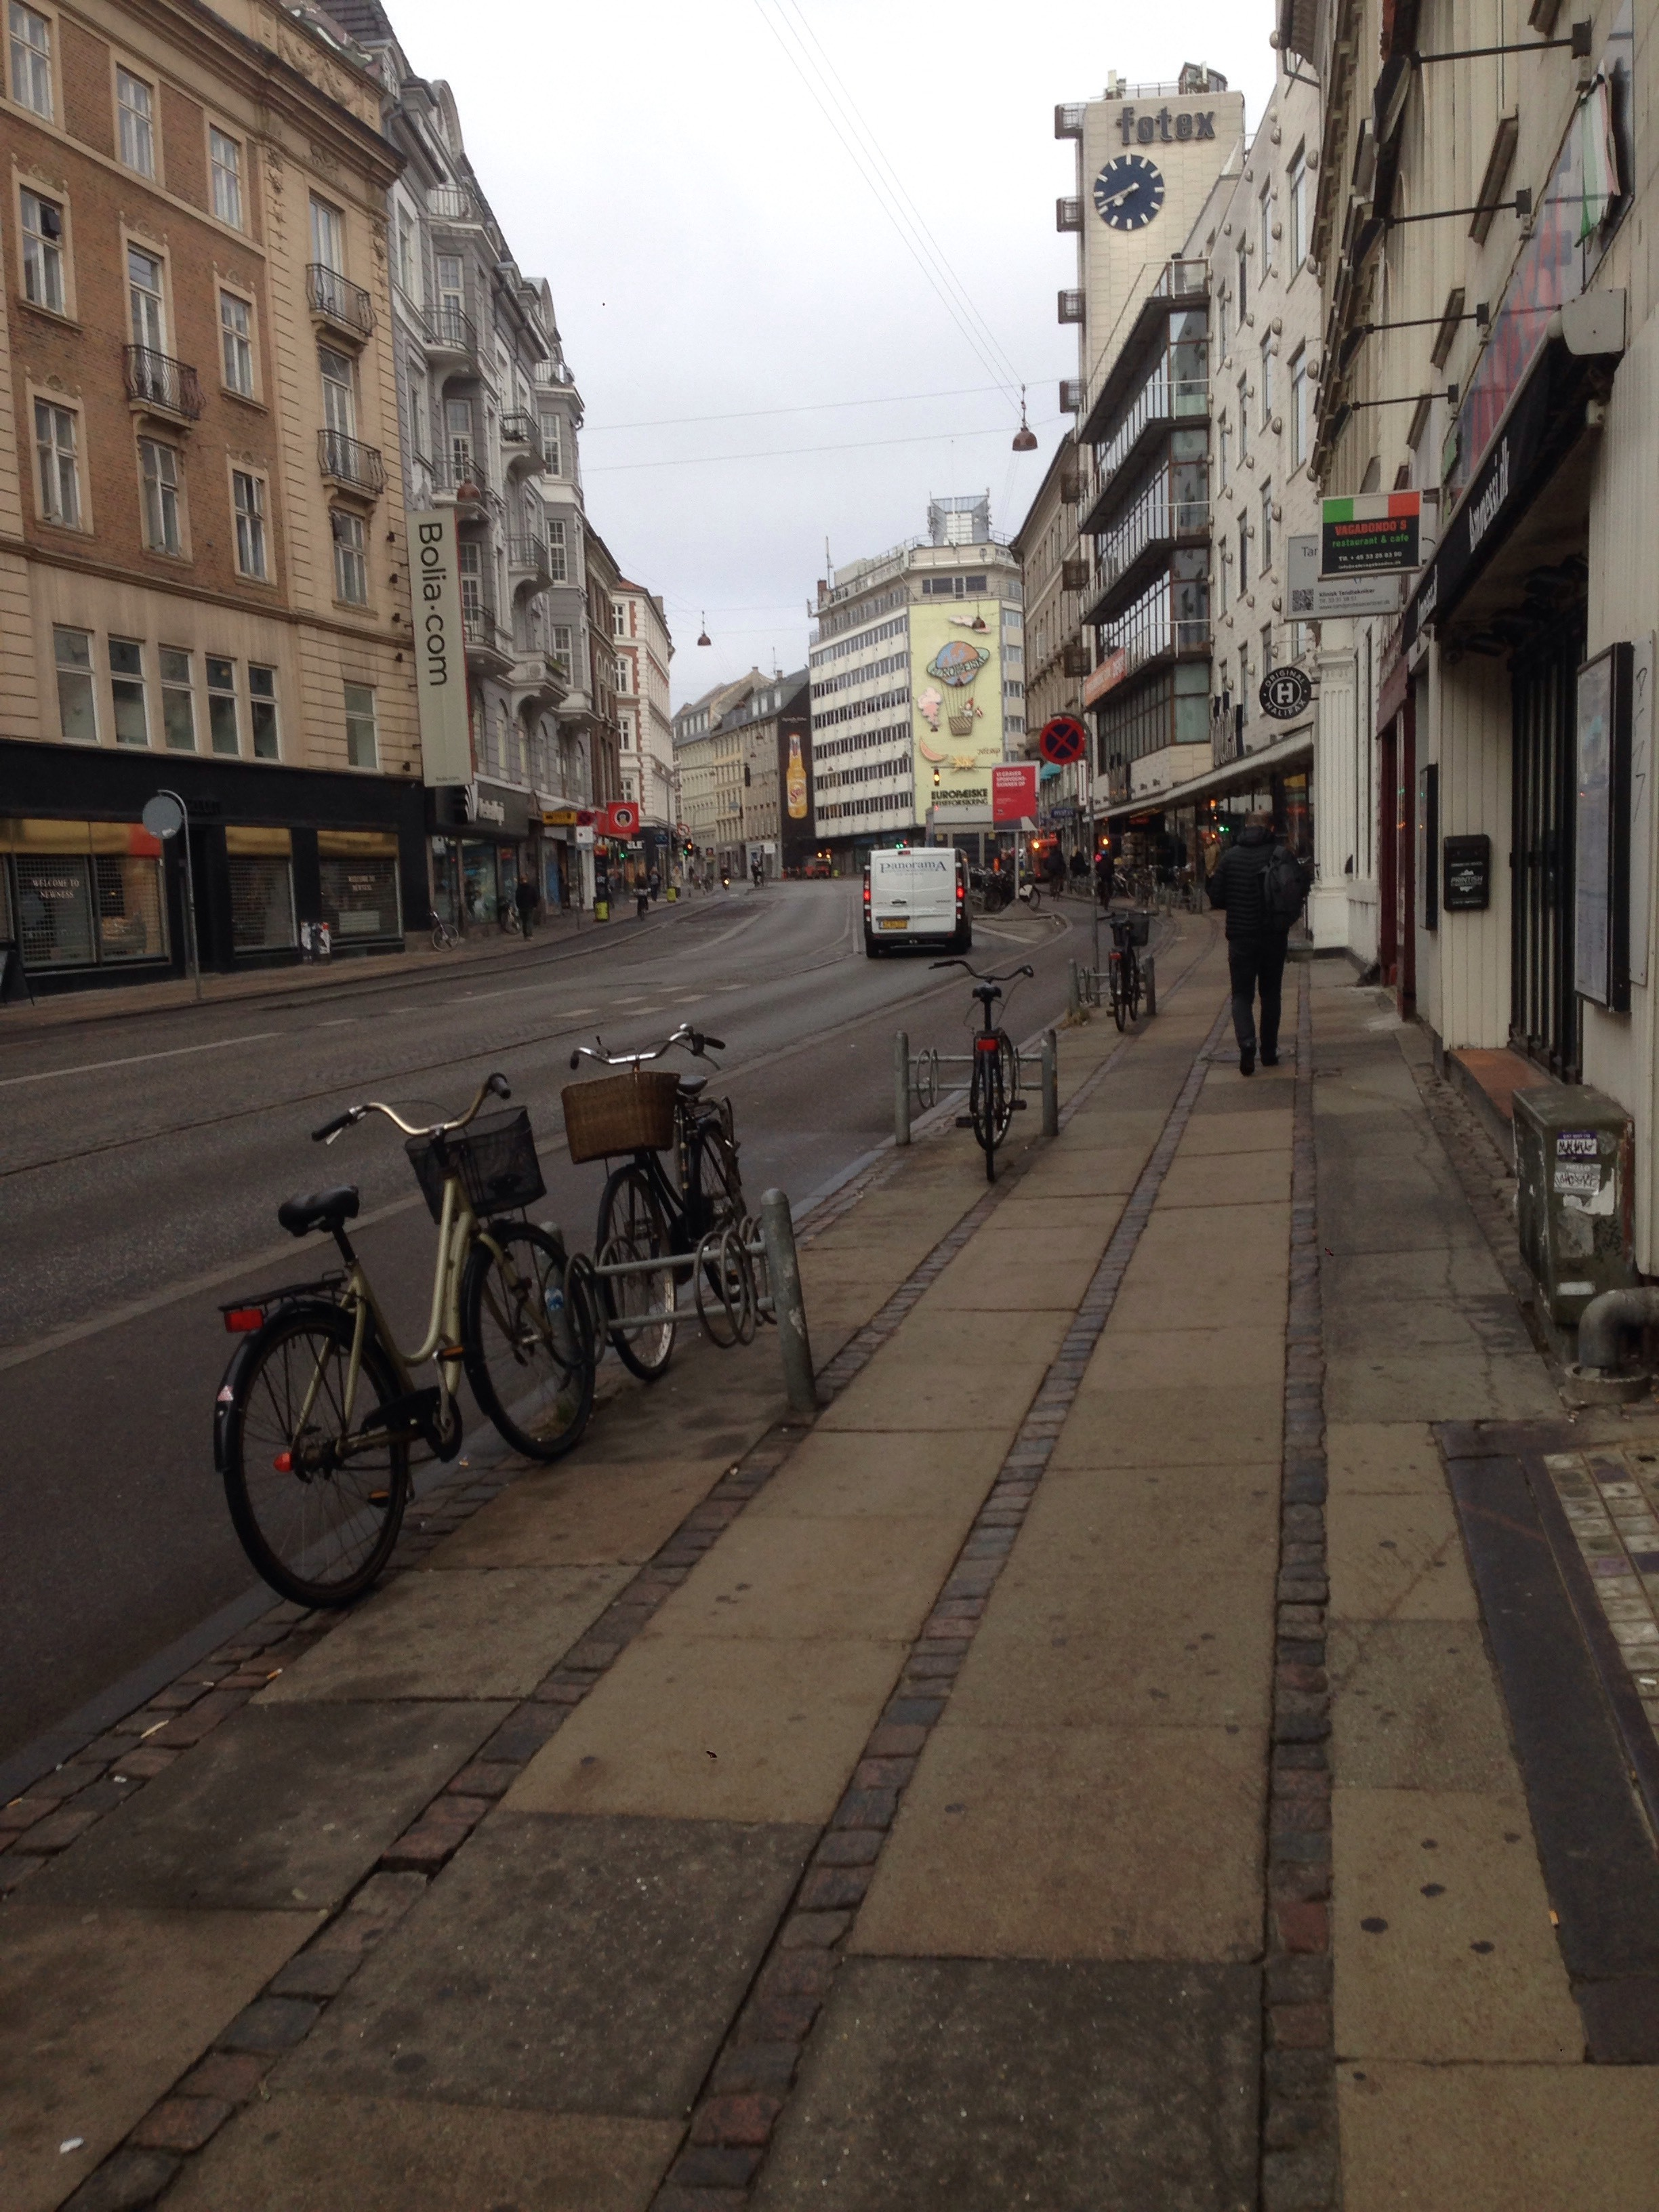 Notice how there is no traffic?  Everyone rides bikes here leaving the streets generally free of traffic. Amazing.